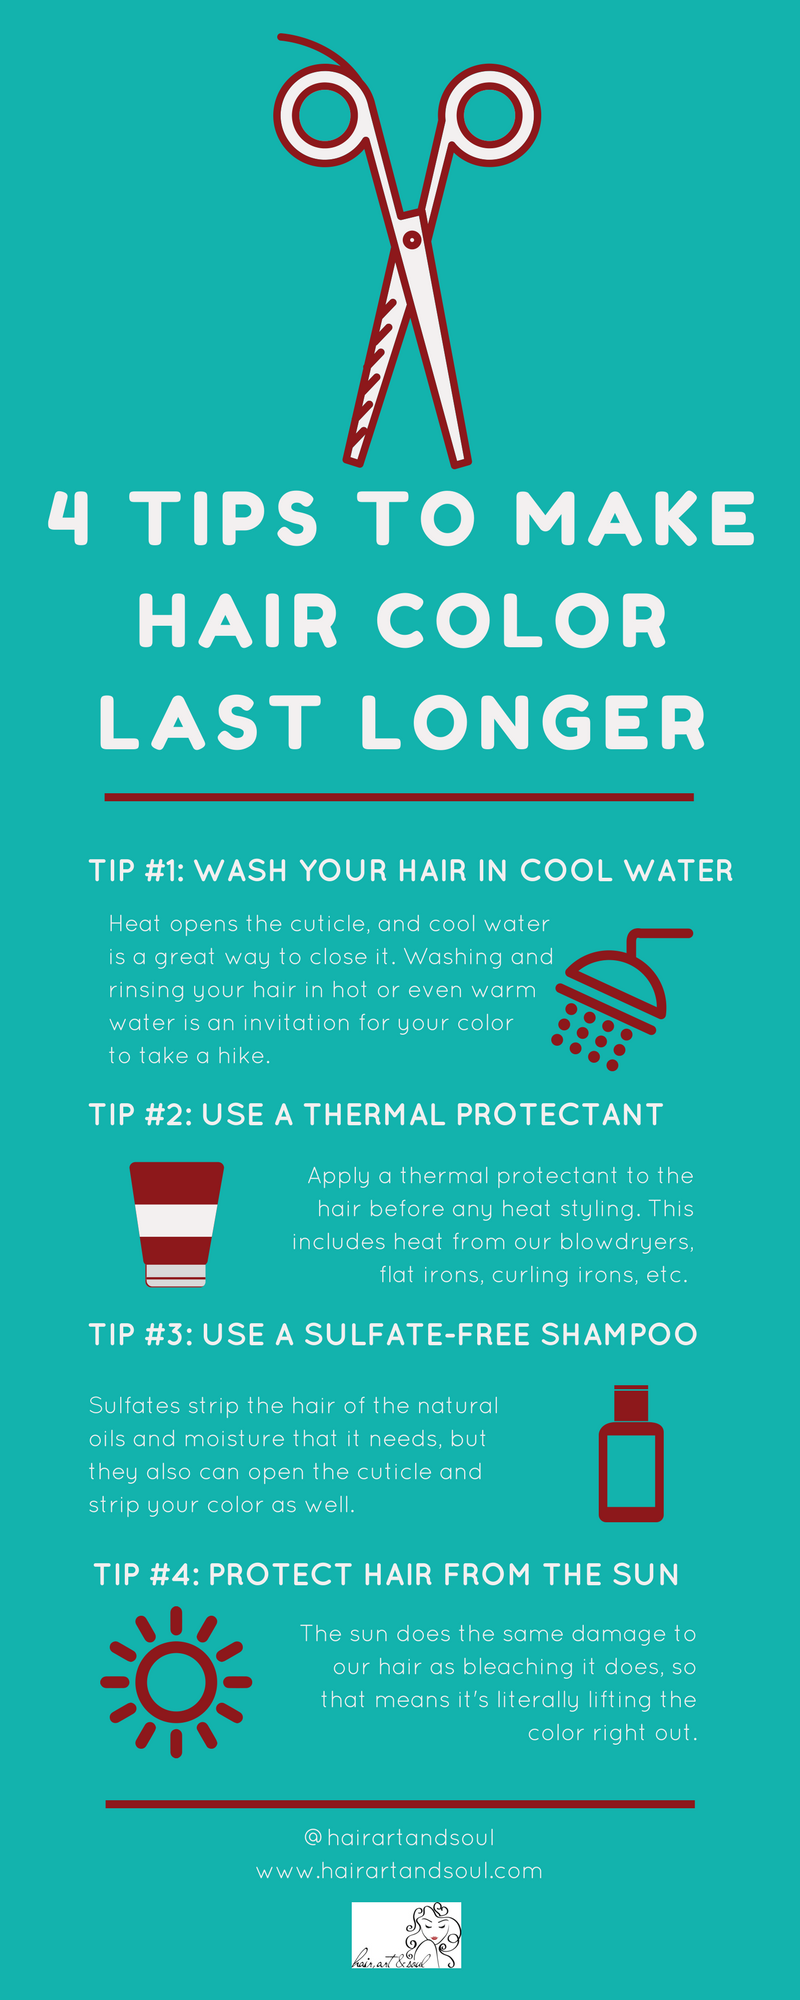 hair color, thermal protectant, sulfate-free shampoo